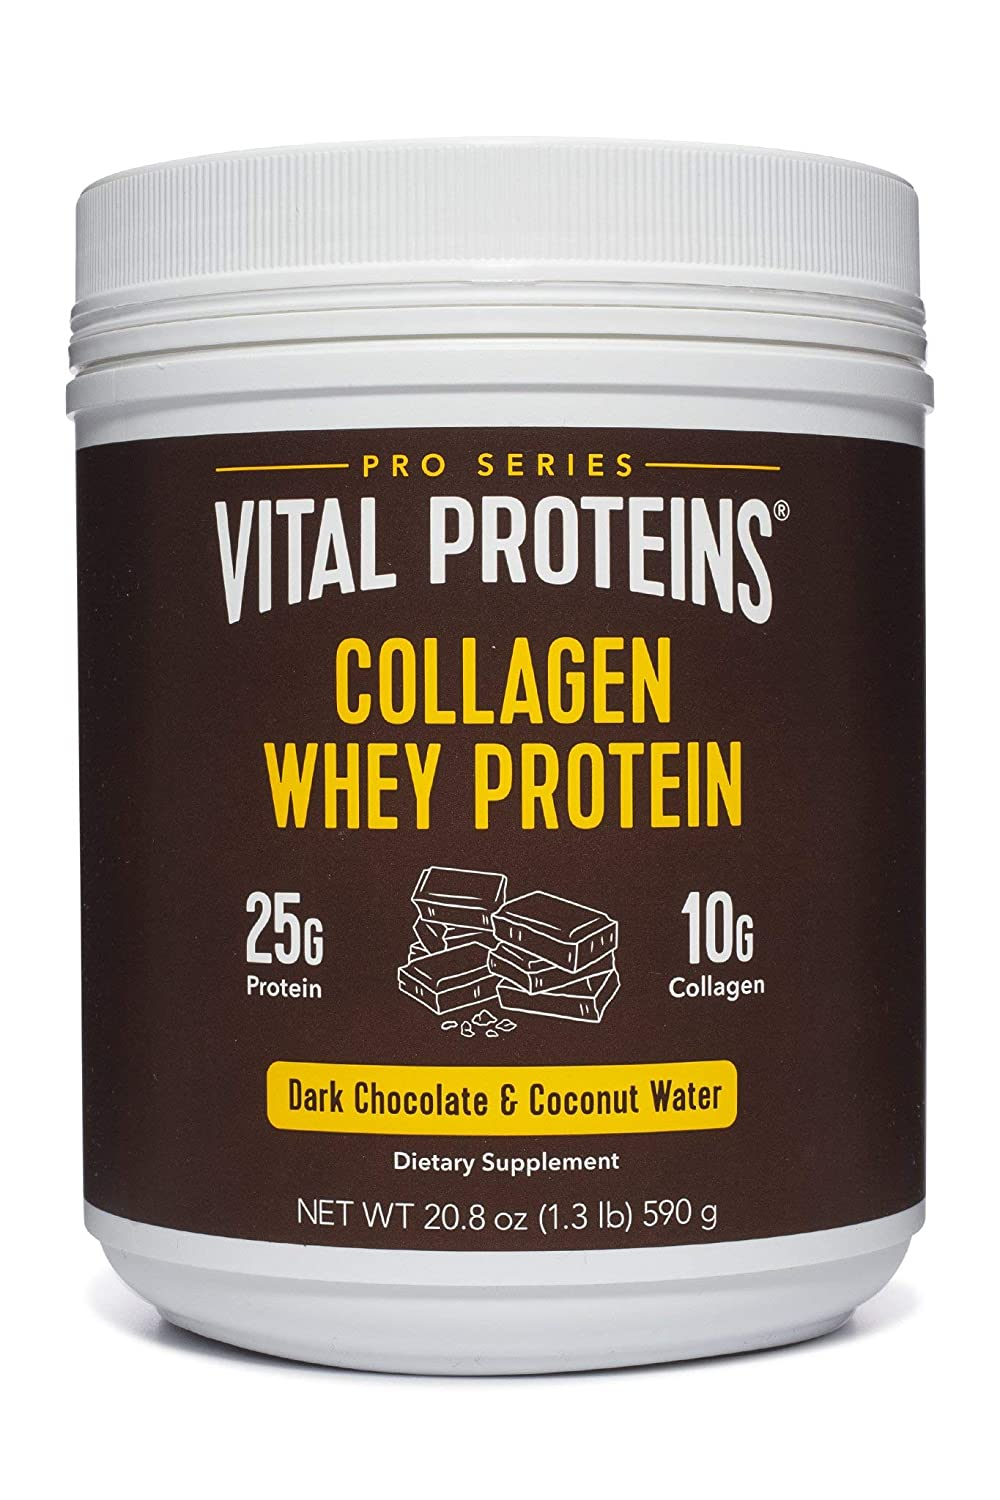 Collagen Whey Protein Powder – 25g of protein per serving Dark Chocolate , 20.2 oz Canister – Vital Proteins Whey